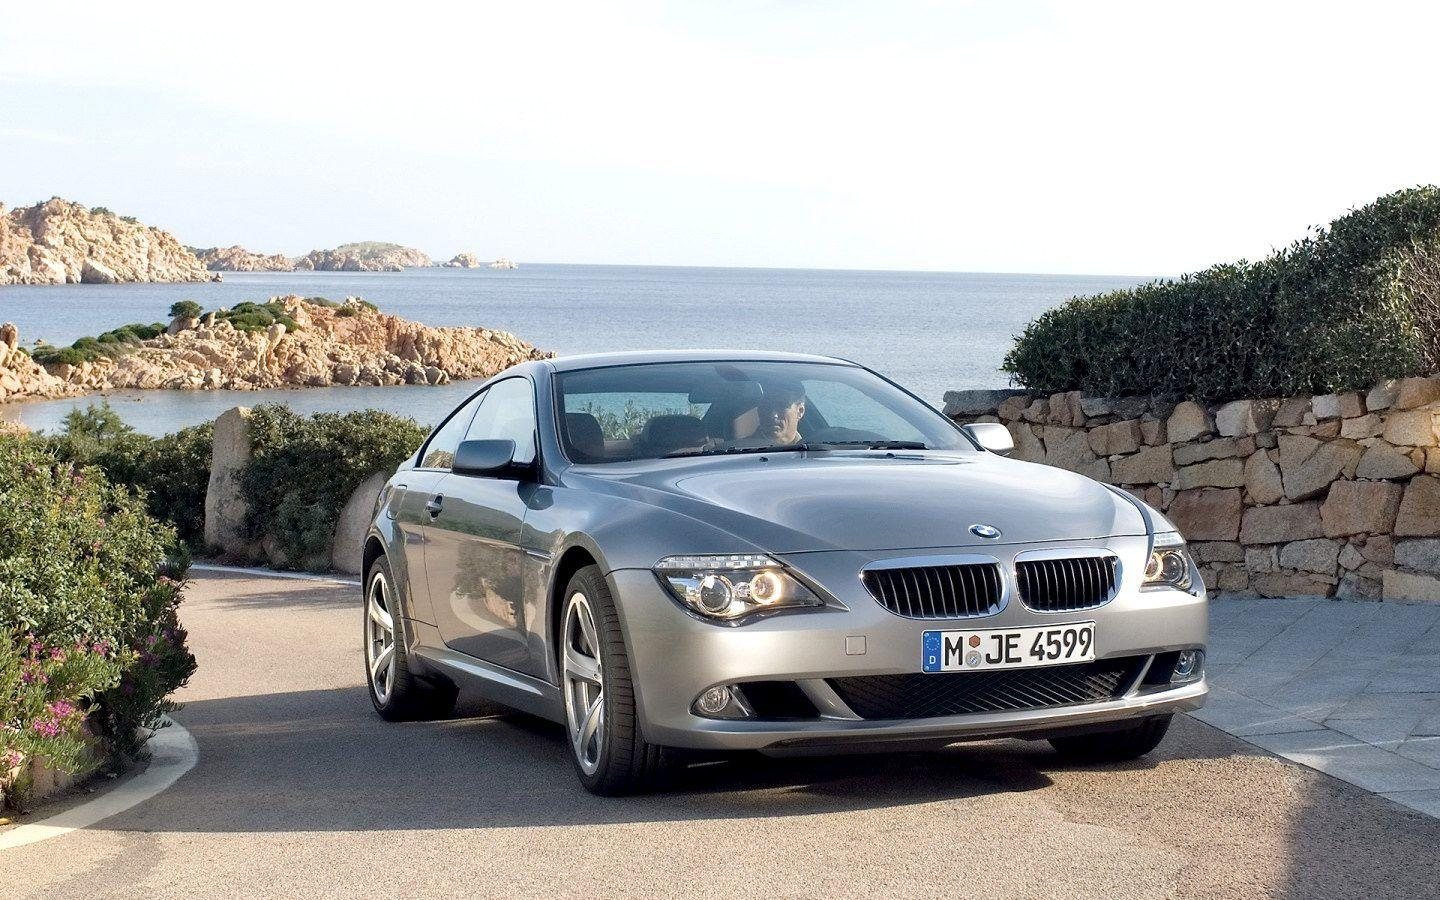 2008 BMW 6 Series Wallpaper 24 - 1440x900